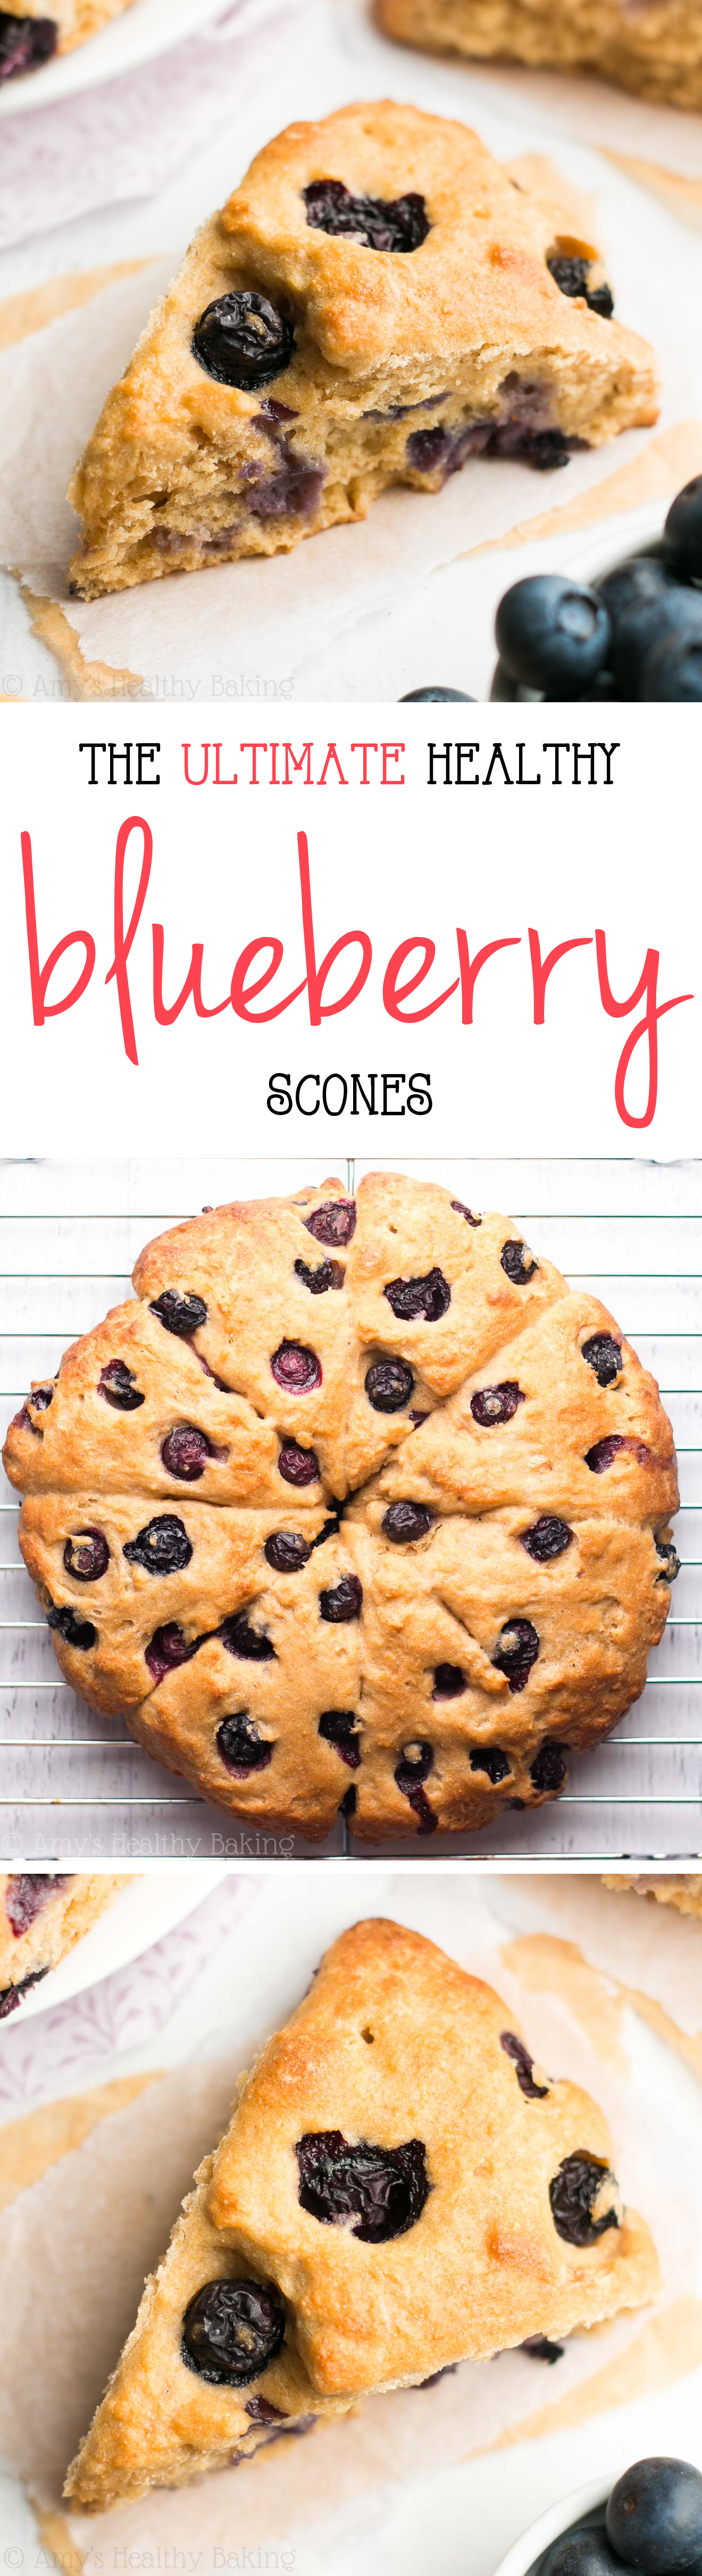 The Ultimate Healthy Blueberry Scones